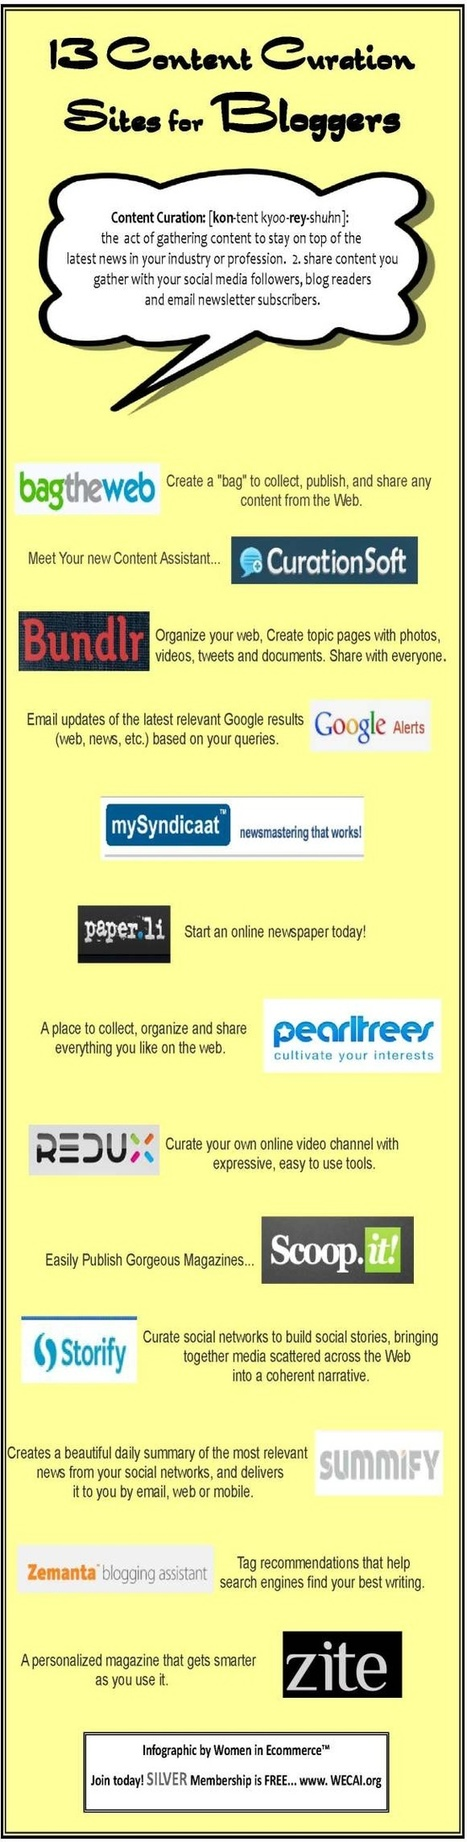 13 Content Curation Sites for Bloggers [INFOGRAPHY] | Content Marketing & Content Curation Tools For Brands | Scoop.it